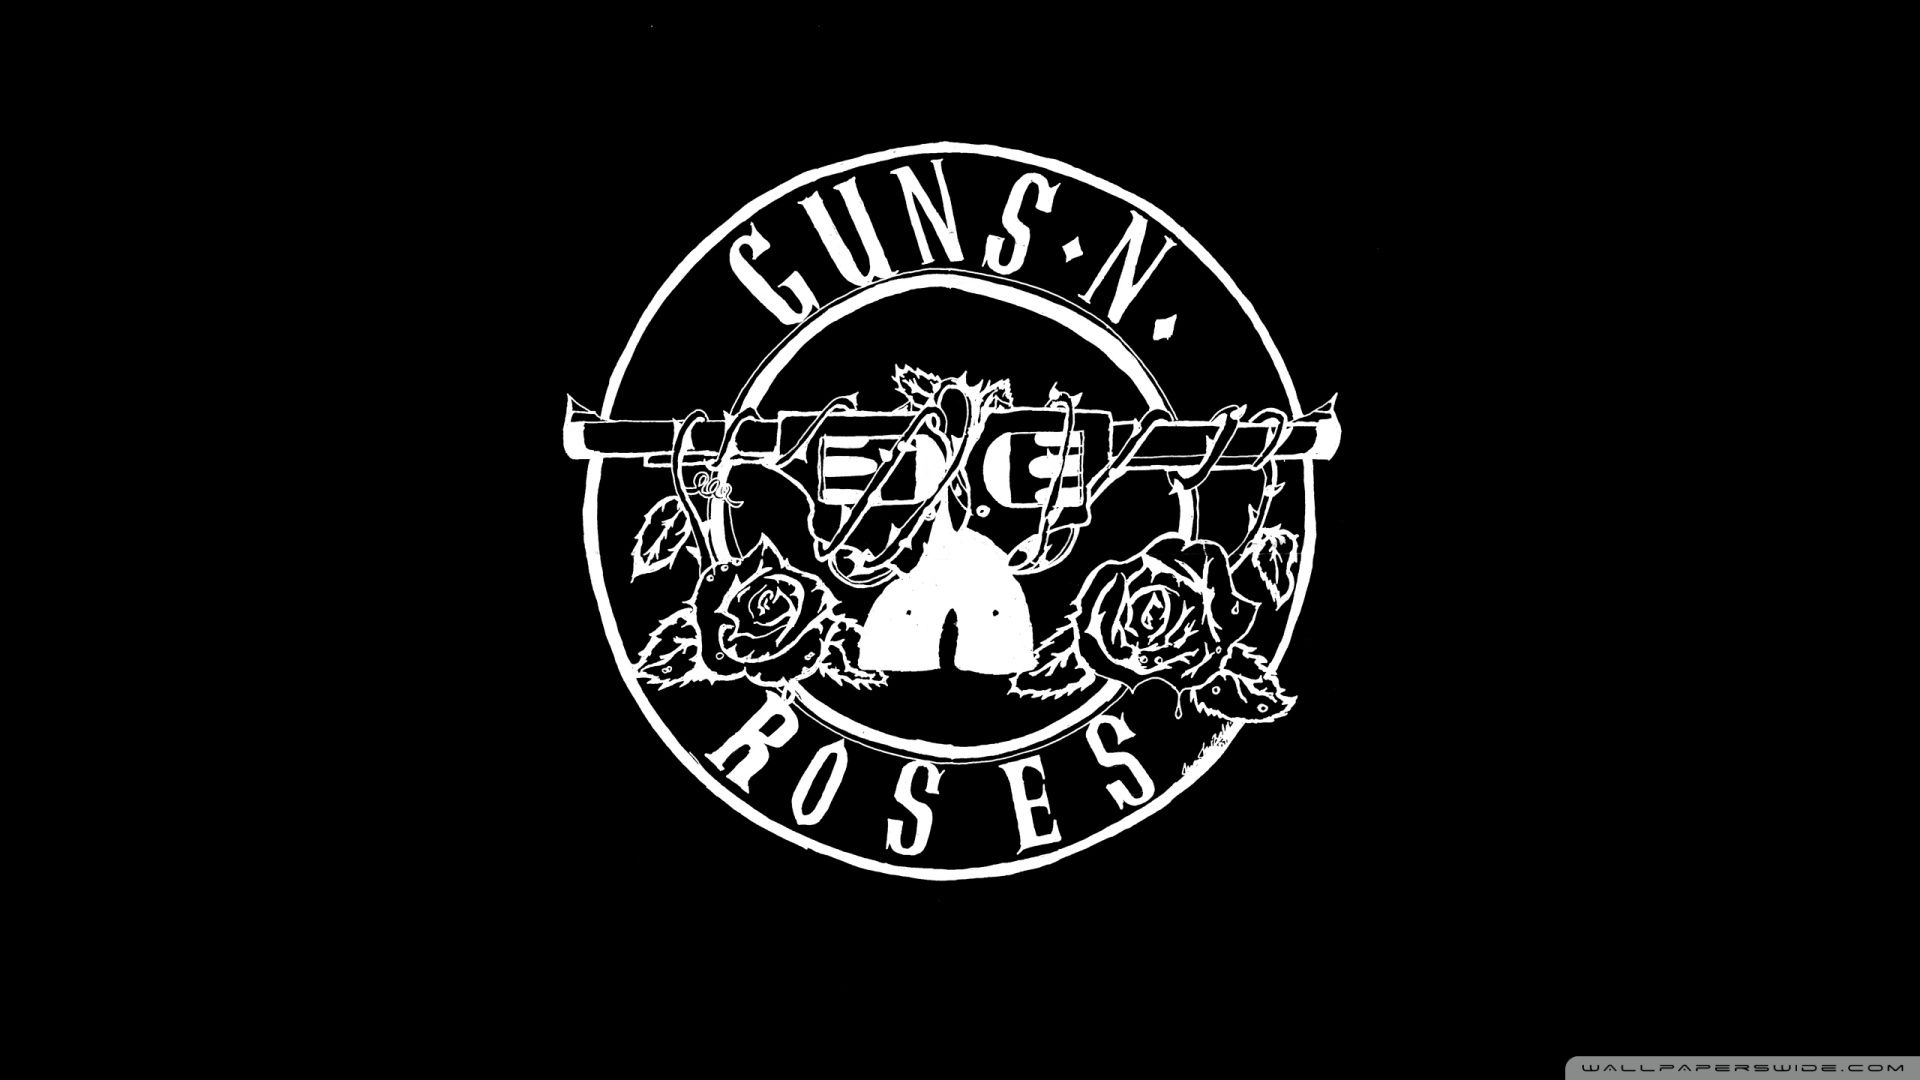 Guns N Roses Logo Wallpaper Wallpapertag